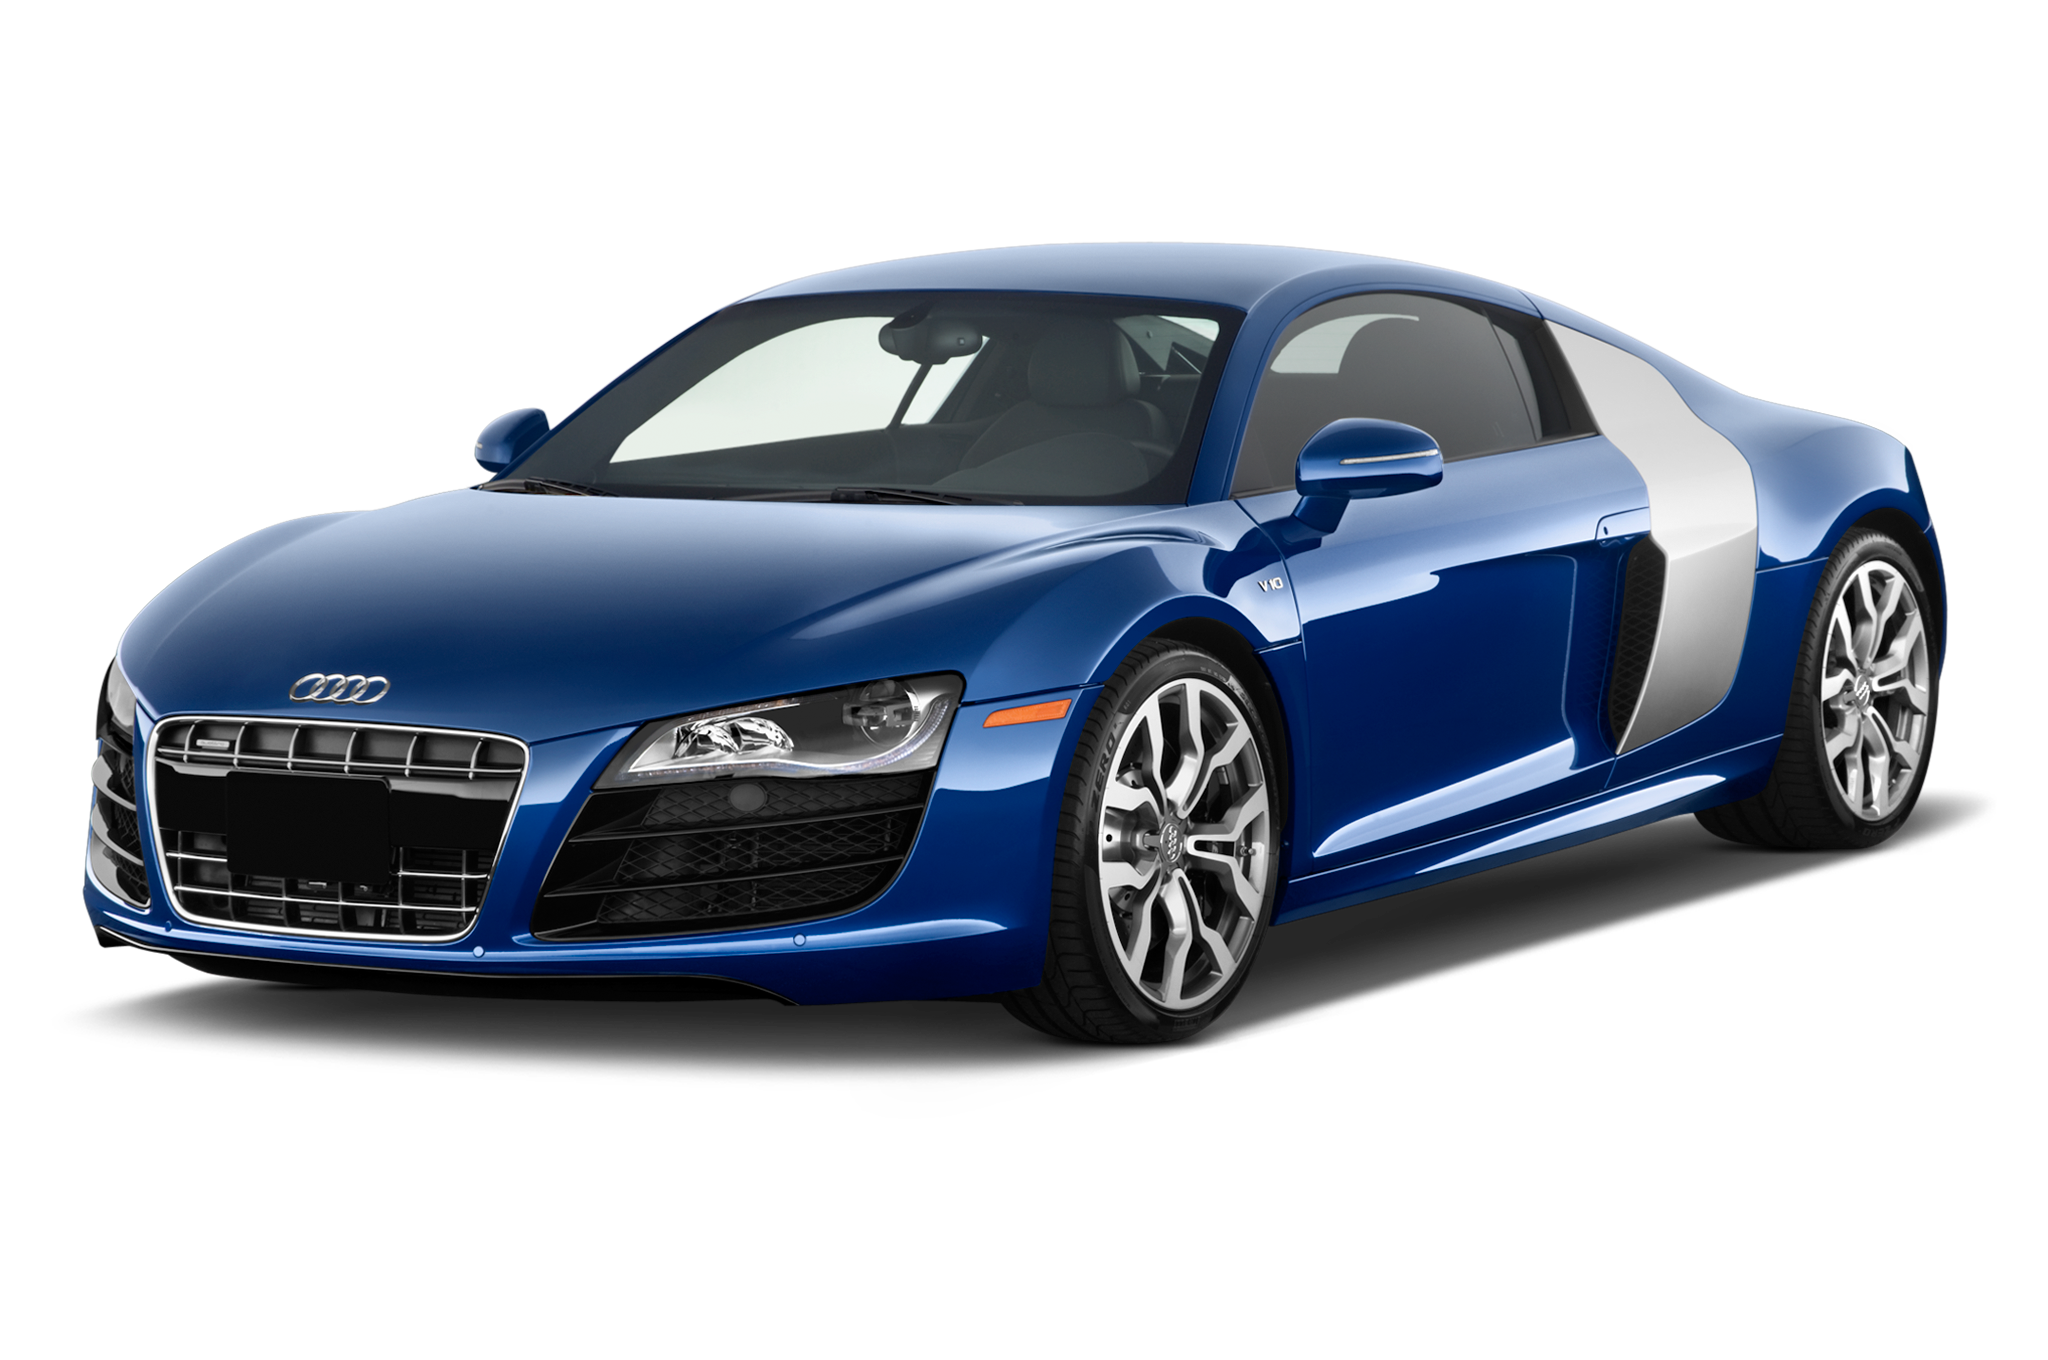 2010 Audi R8 V10 - Audi Sport Coupe Review - Automobile ...